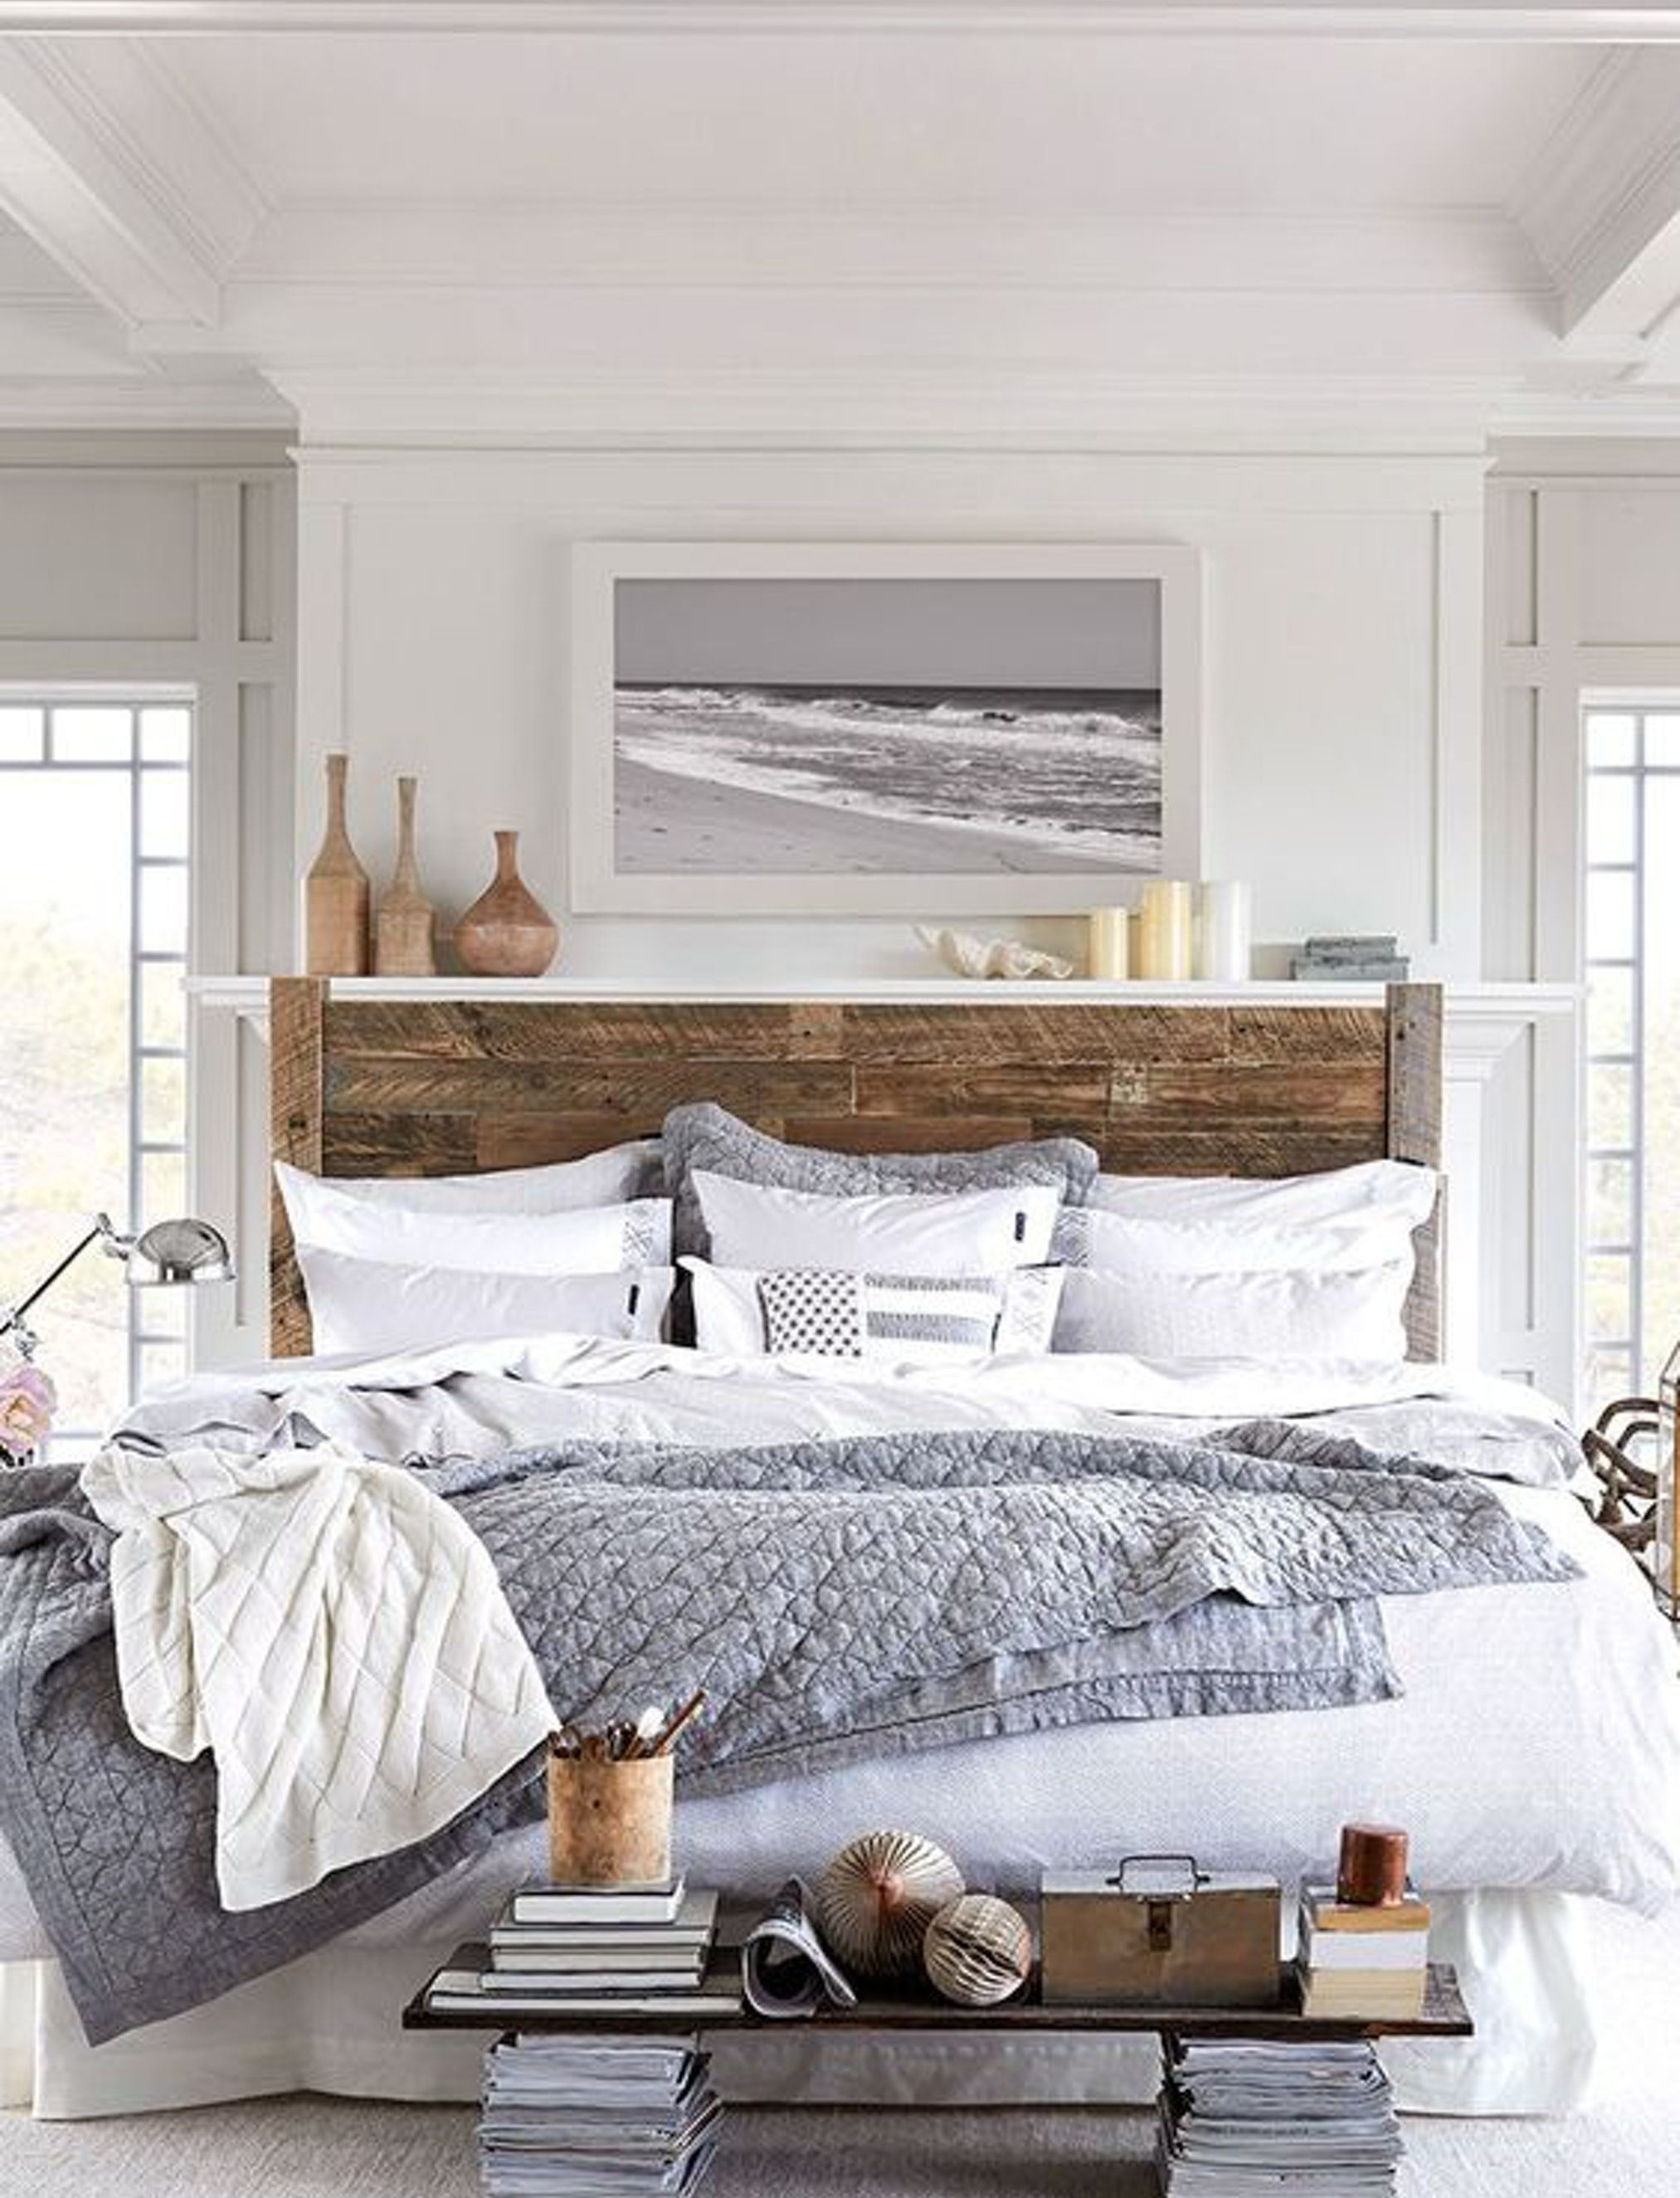 Merveilleux Want To Know, U201cwhat Is My Decorating Style?u201d Take Havenlyu0027s Interior Design  U0026 Decorating Quiz To Find Your Design Style So You Can Start Decorating  Your ...